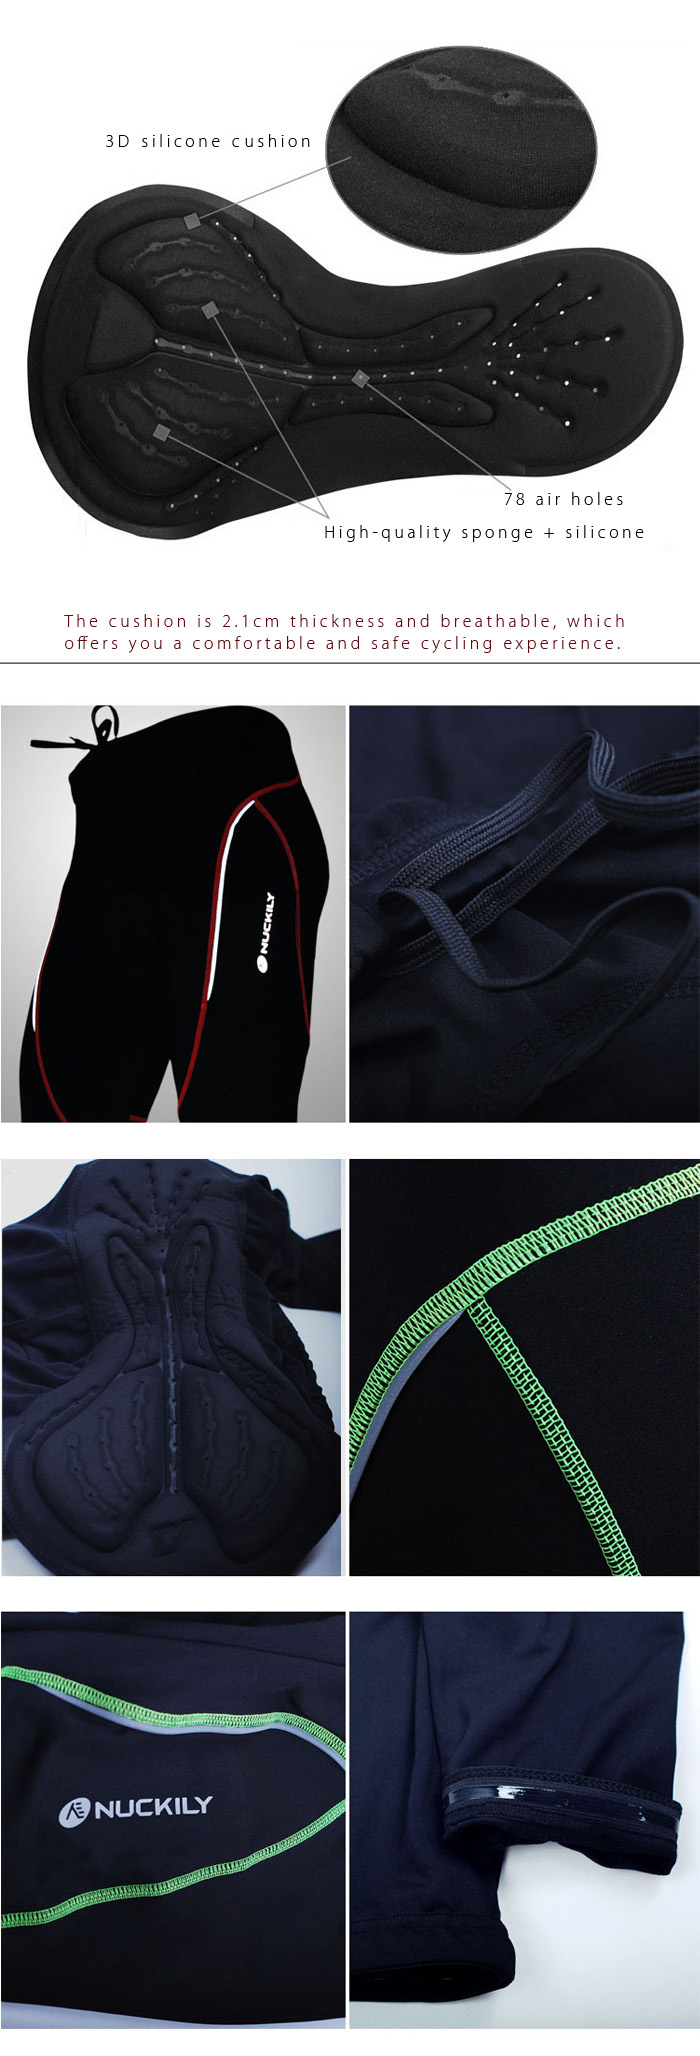 NUCKILY NS903 - W Winter Warm Cycling Pants with Silicone Cushion Reflective Logo